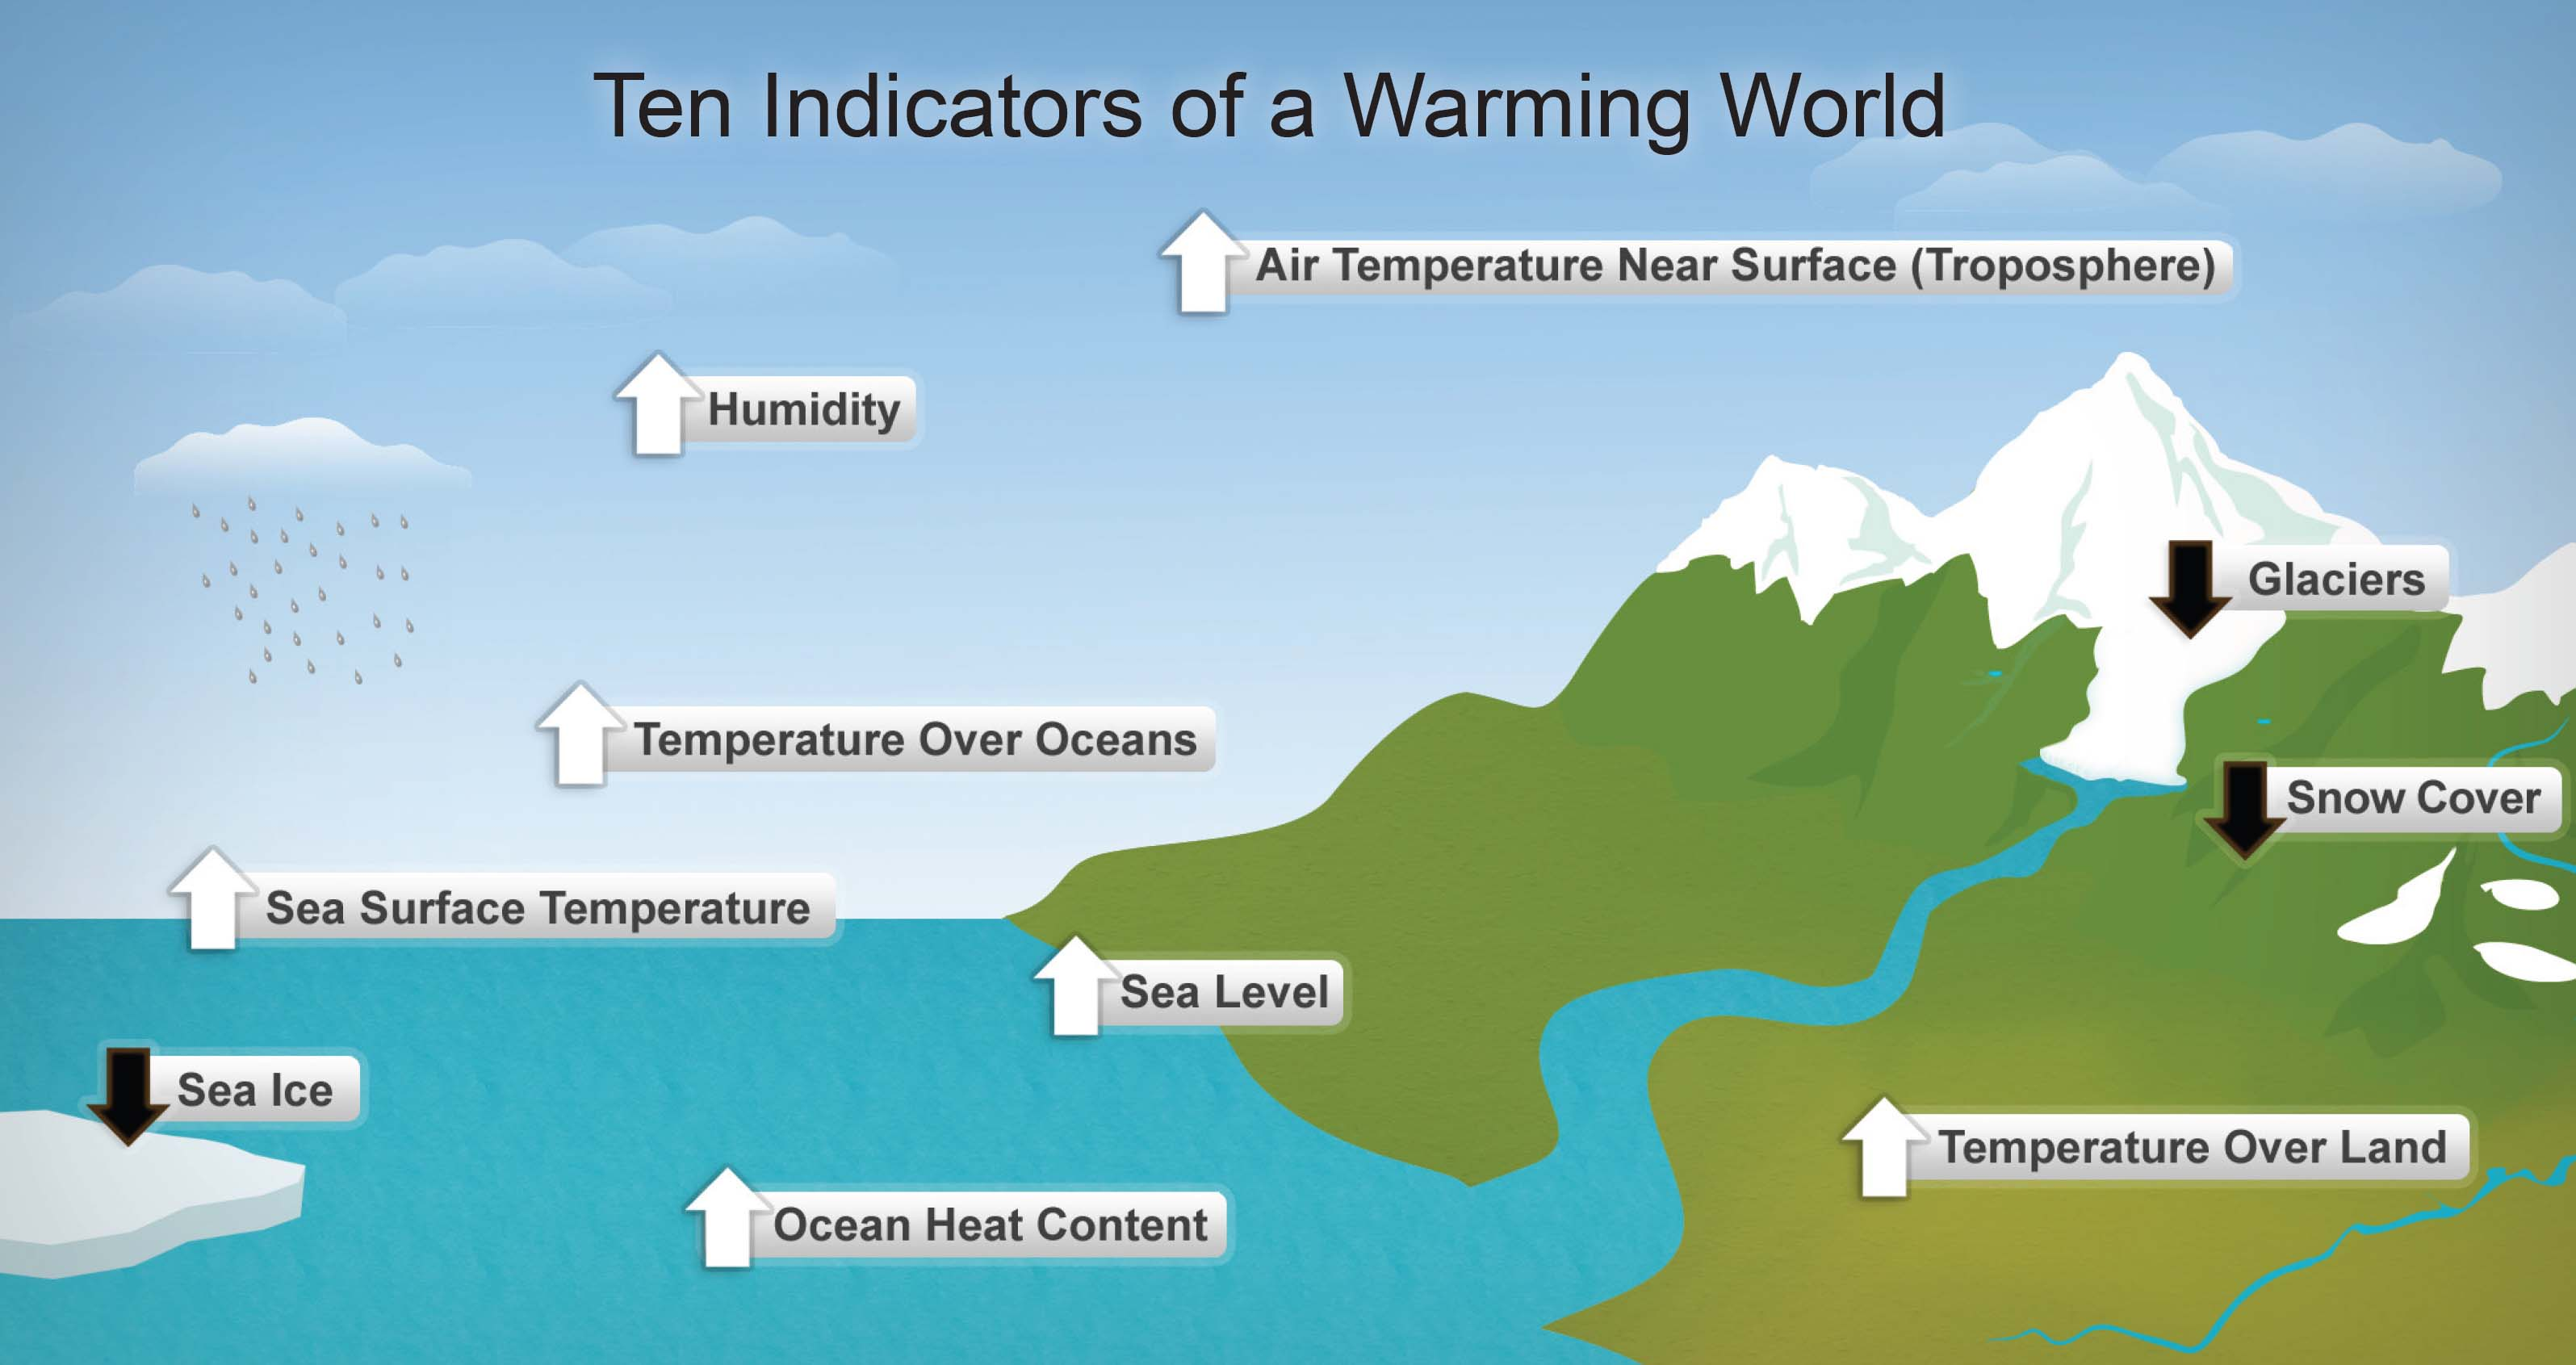 There are several indicators of man-made climate change